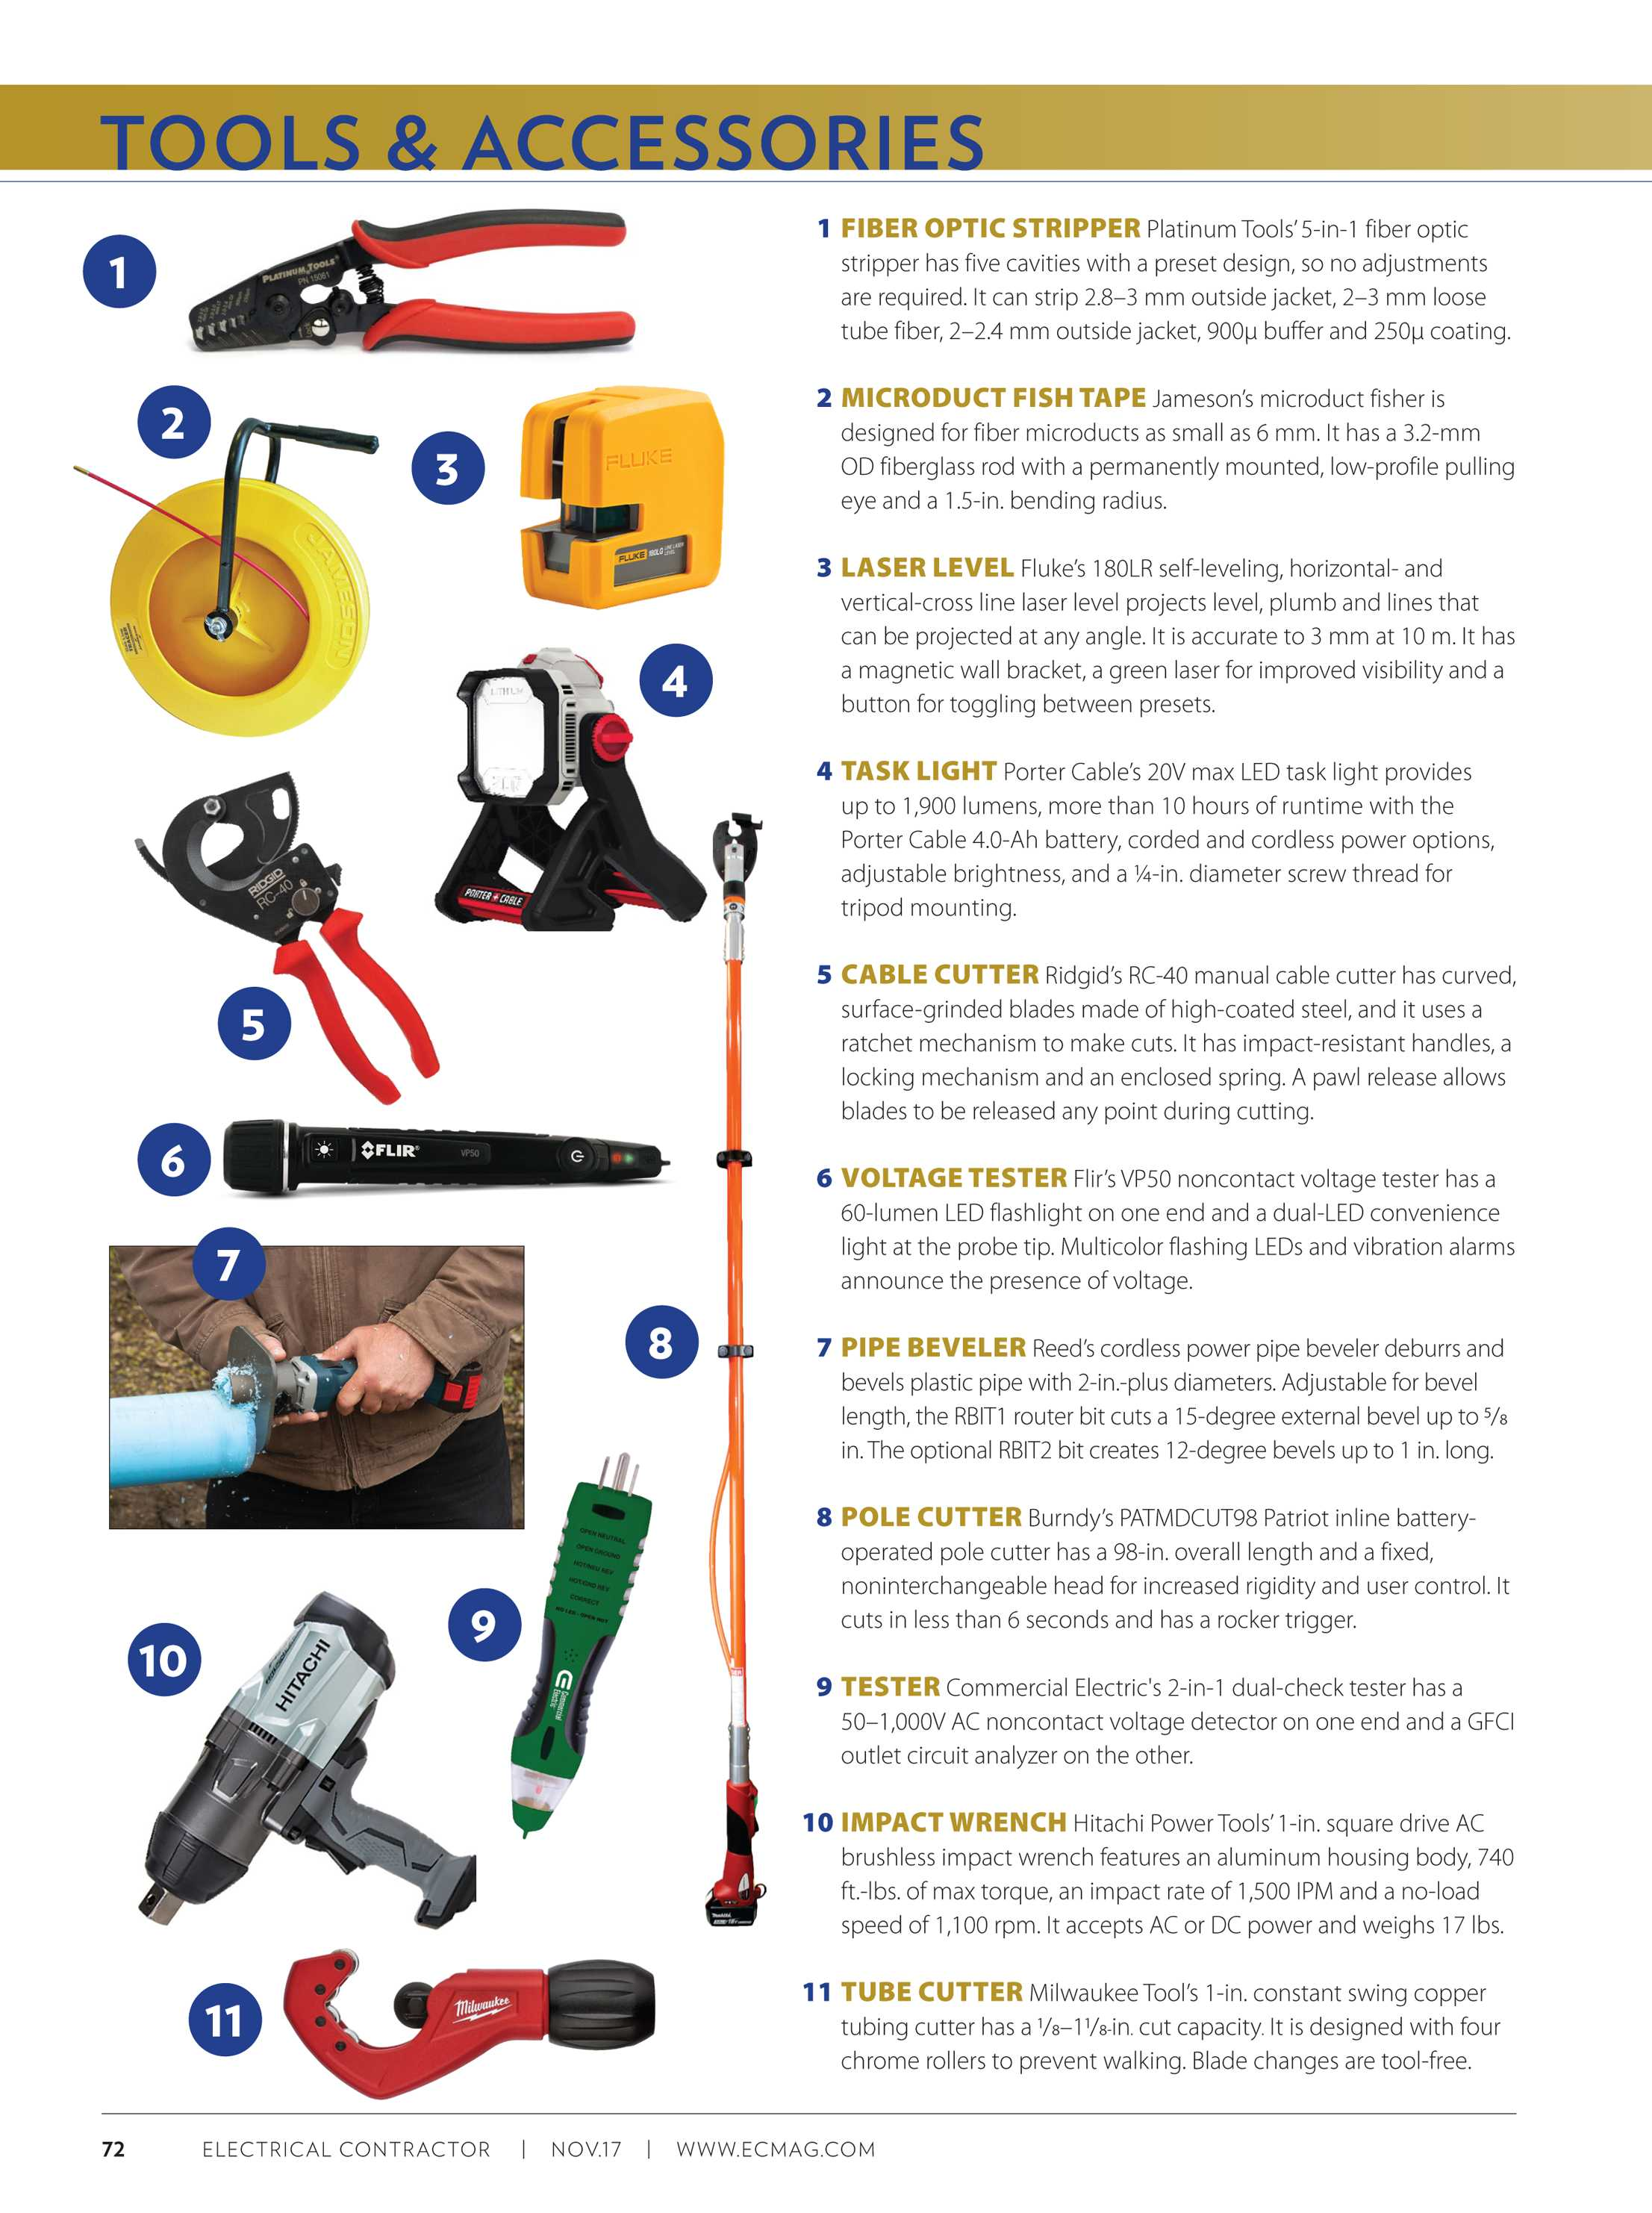 Electrical Contractor - November 2017 - page 72